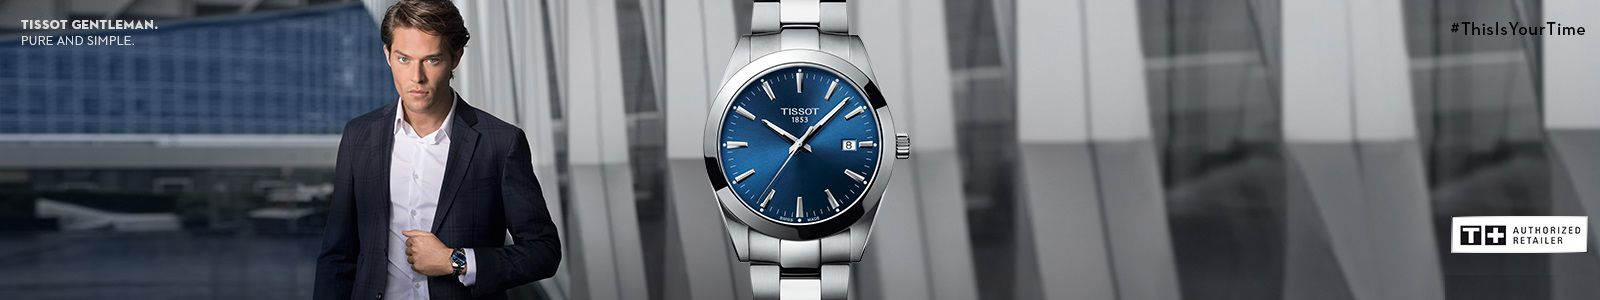 Tissot Gentleman, Pure and Simple